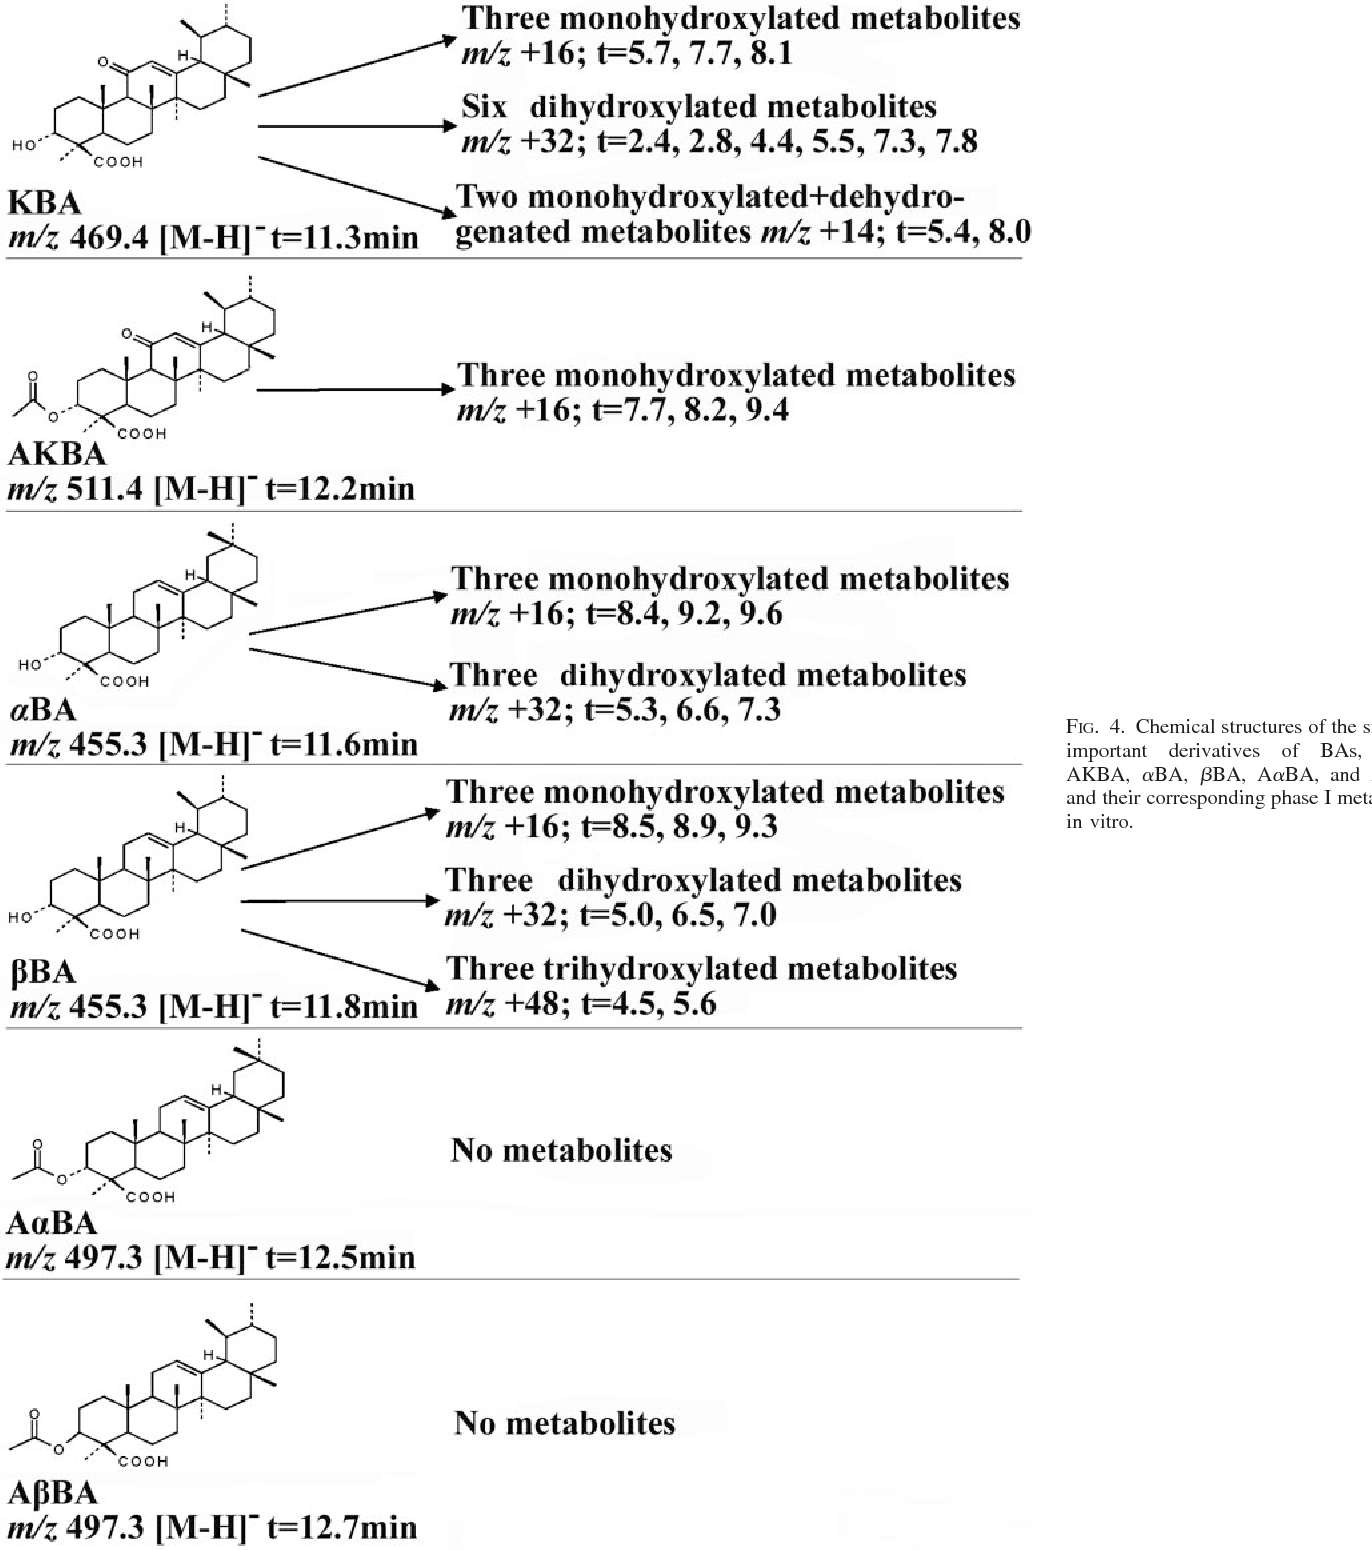 Figure 4 from Metabolism of boswellic acids in vitro and in